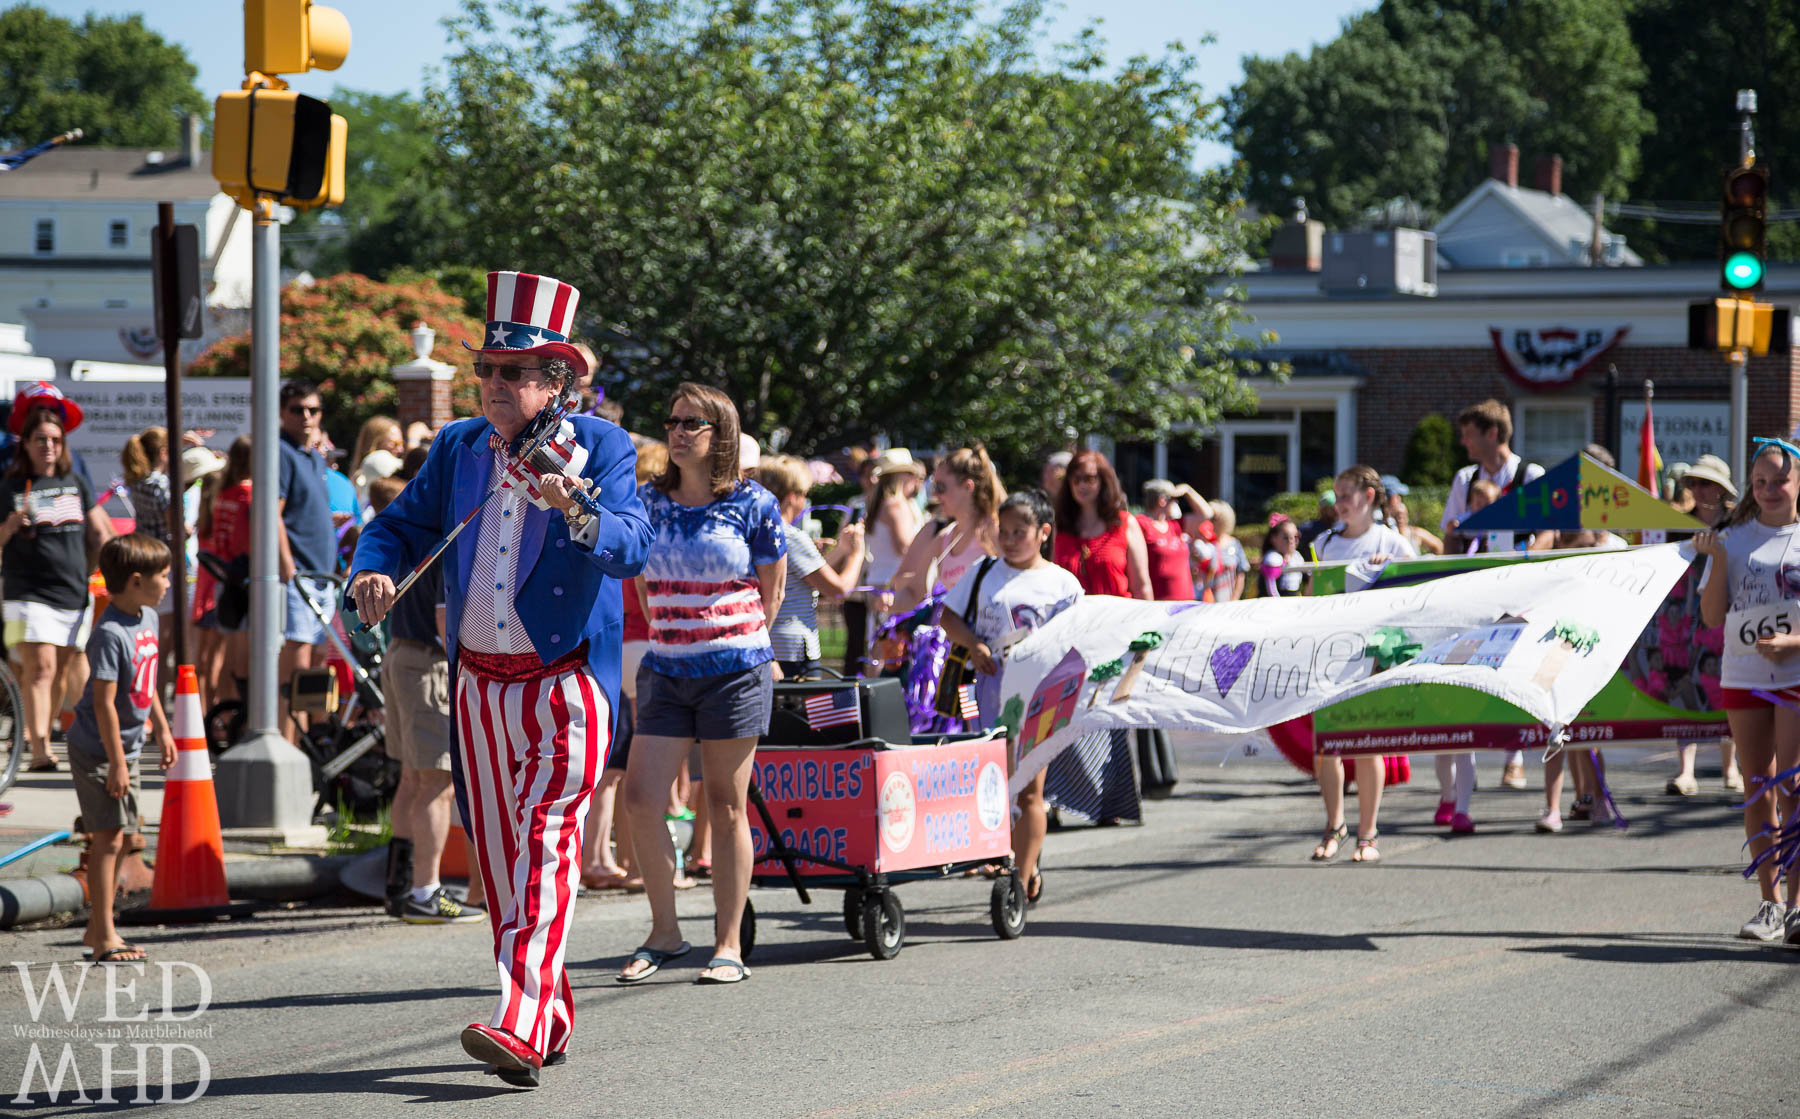 A look back to warm days and crowded streets as the Horribles Parade takes place along Pleasant Street in Marblehead